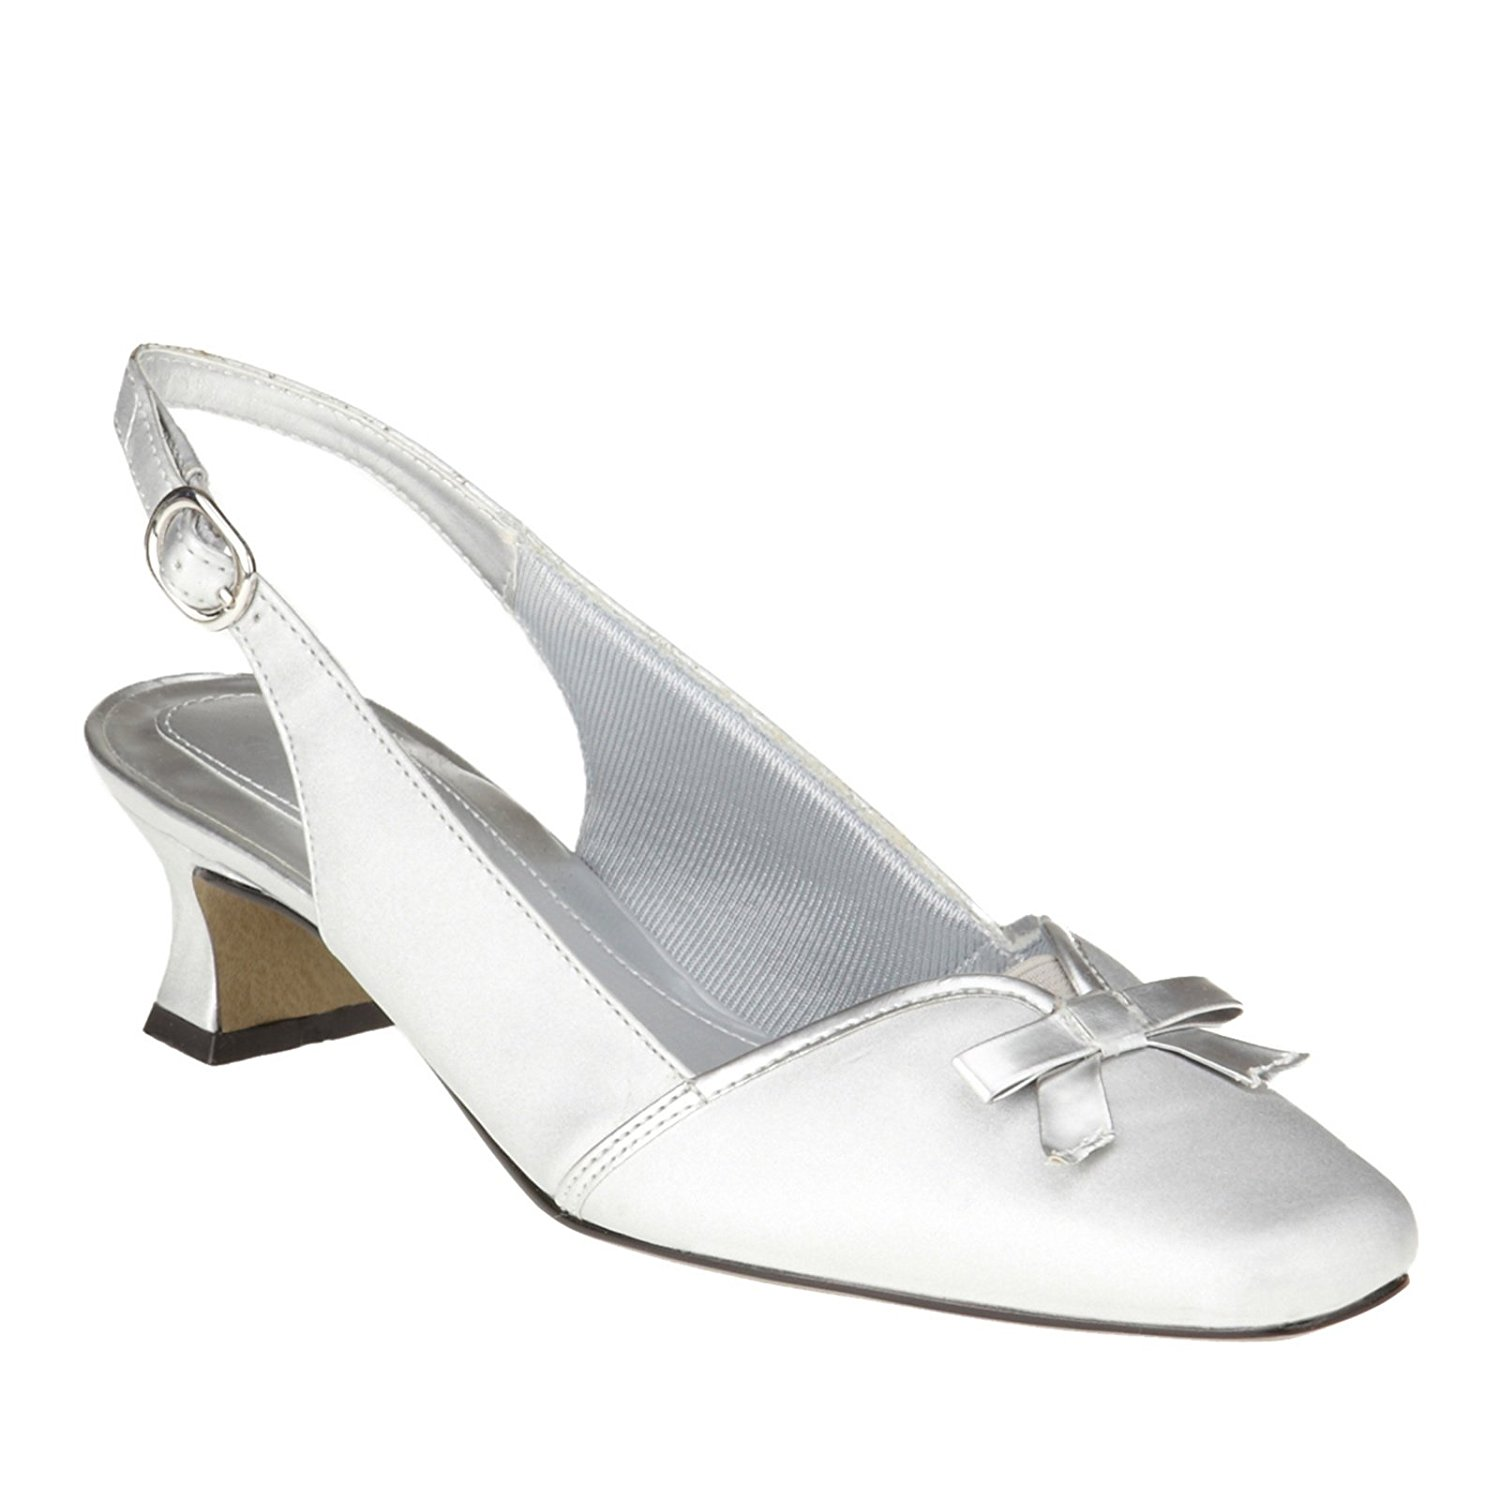 Easy Street Womens Incredible Closed Toe SlingBack Classic Silver Size 6.5